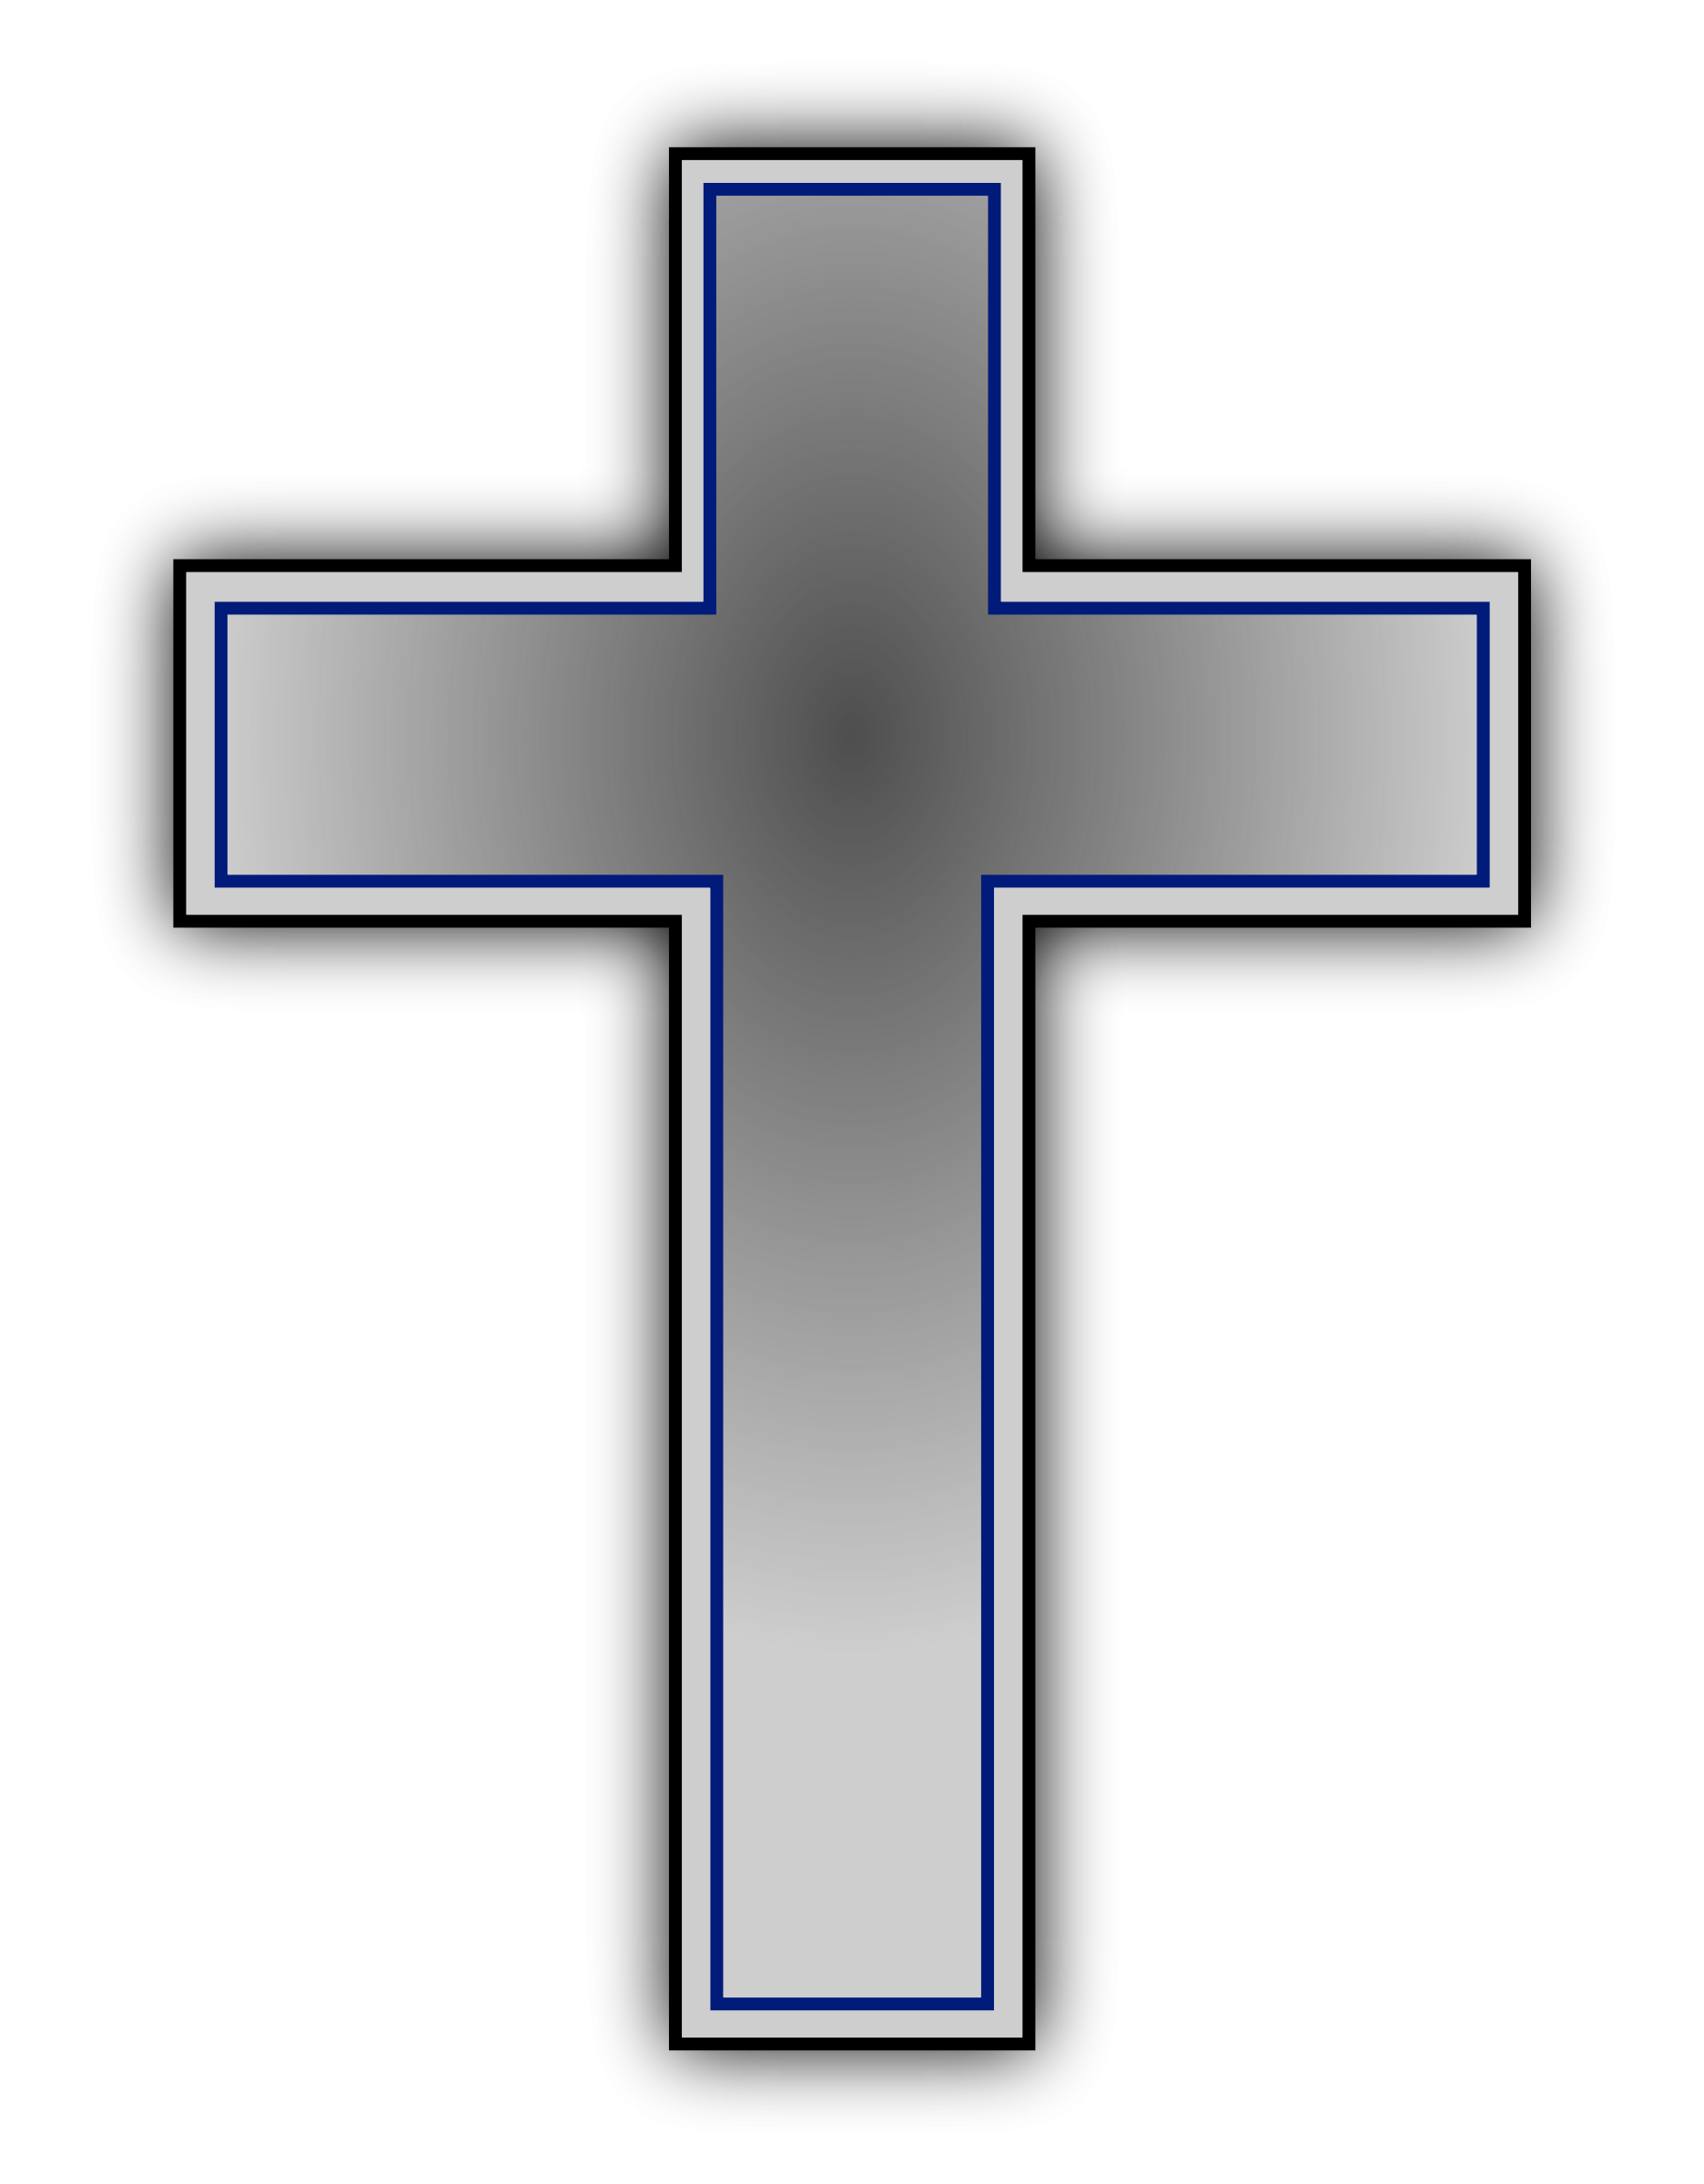 Angled cross clipart transparent download Cross Clipart Black And White | Clipart Panda - Free Clipart Images transparent download